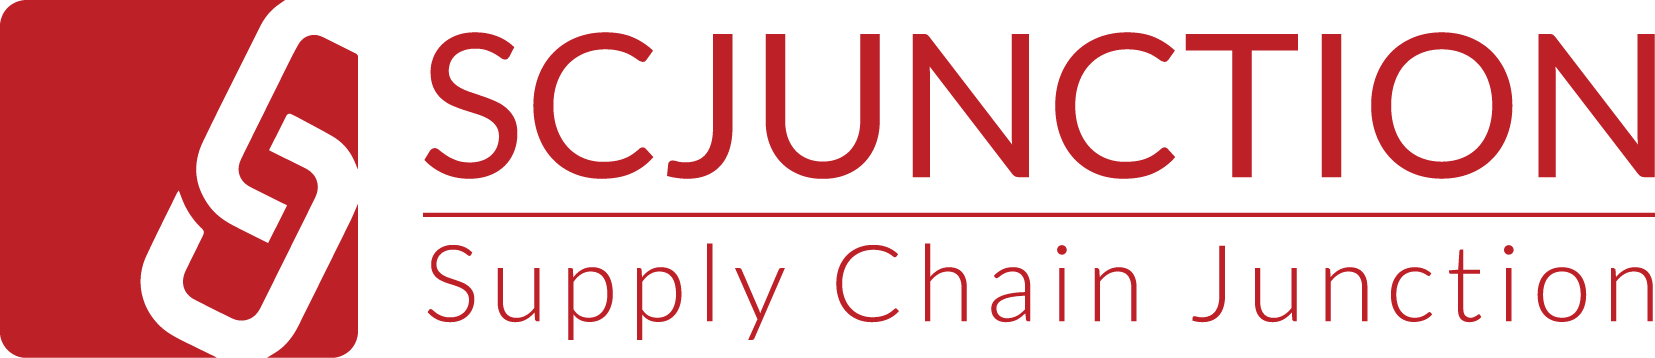 supply_chain_junction_logo